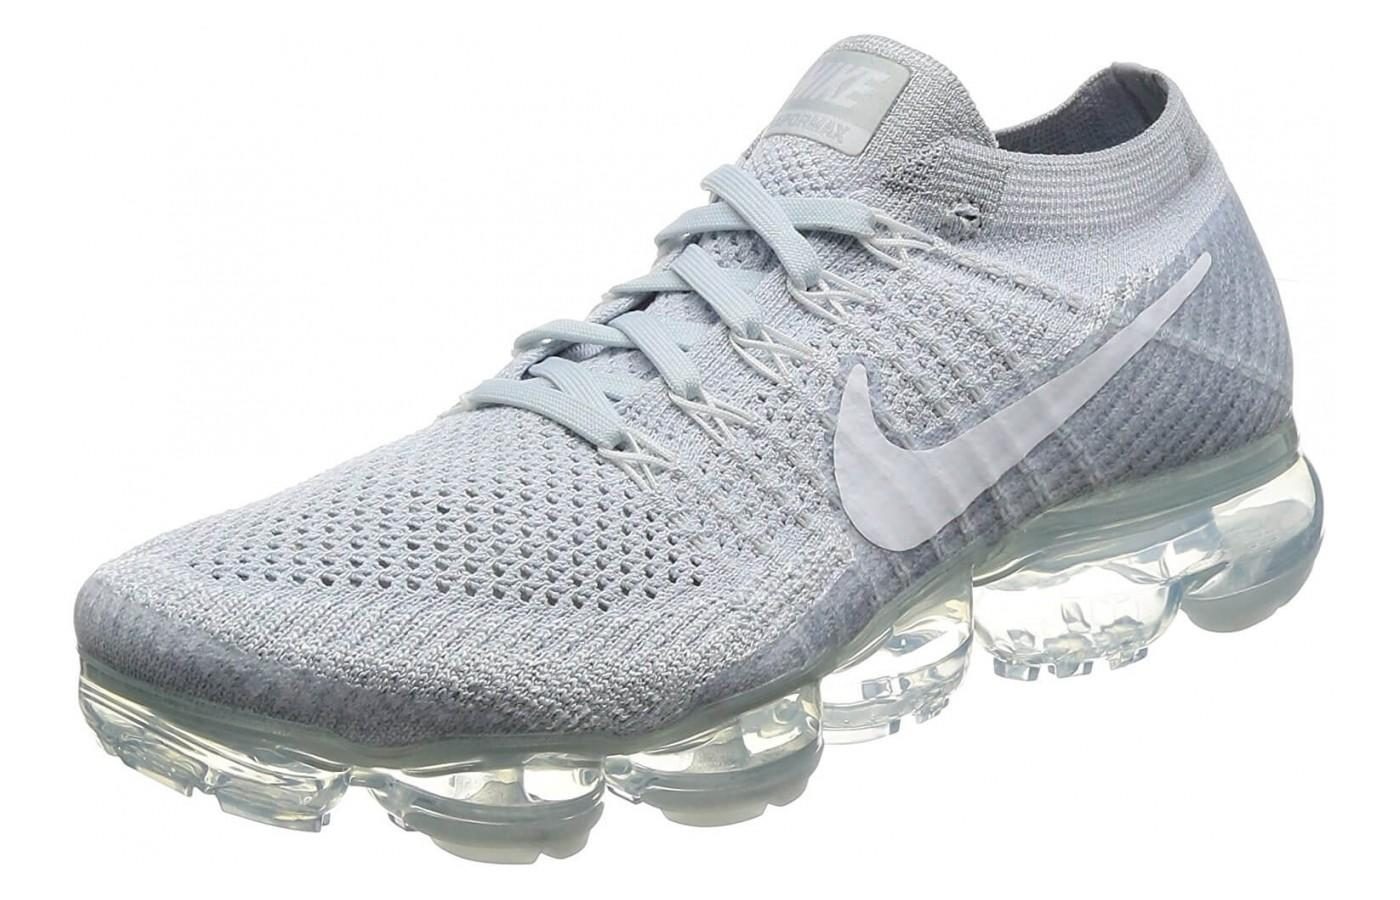 premium selection e783d 0e31f Nike Air Vapormax Flyknit. The platinum coloring and unique design help  this shoe stand out.